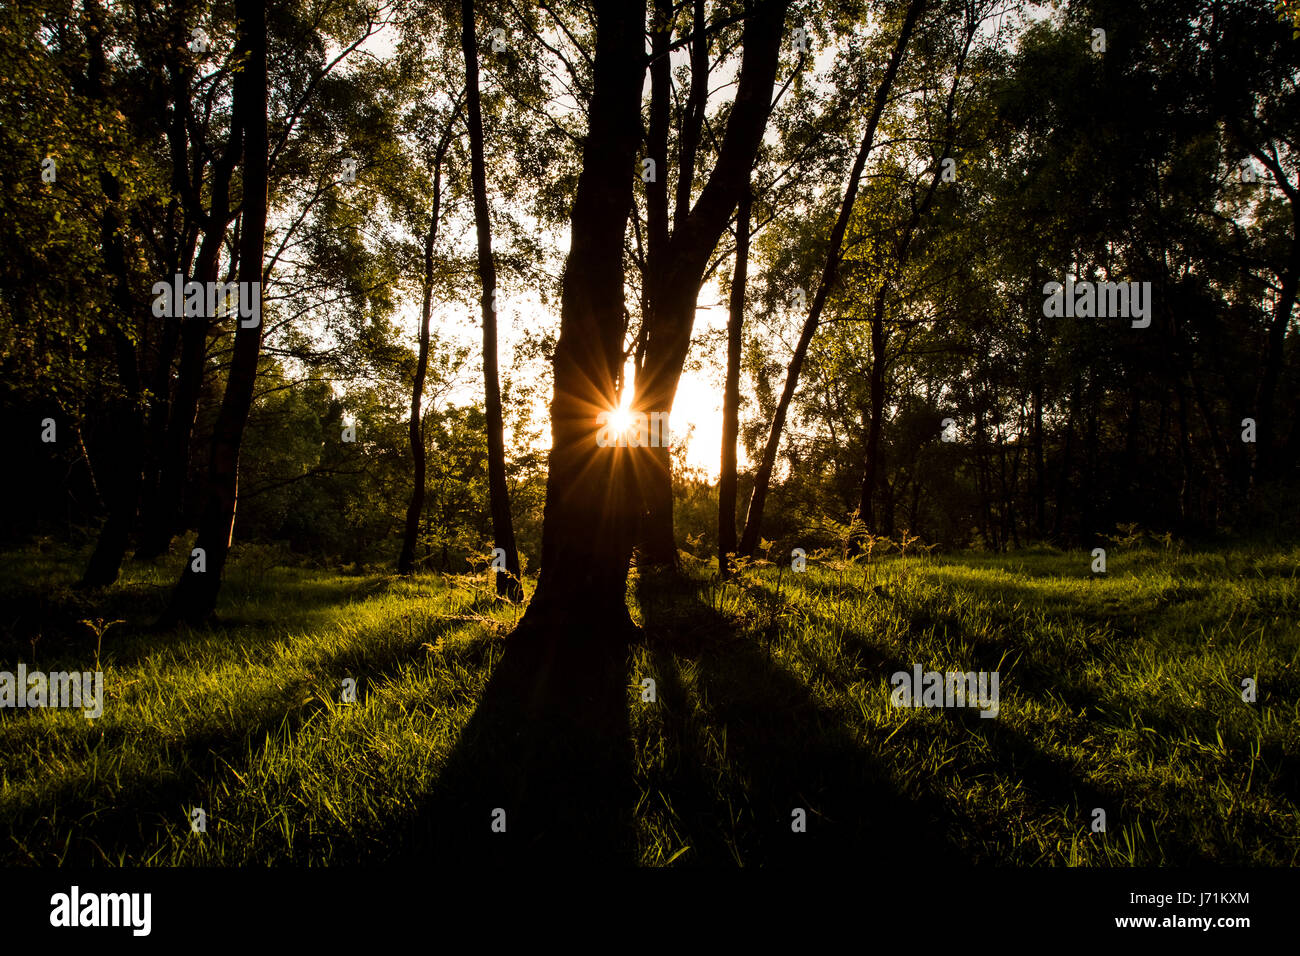 Cannock Chase, Staffordshire, UK. 22nd May, 2017. UK Weather: The sun sets over Cannock Chase Forest, Staffordshire, - Stock Image